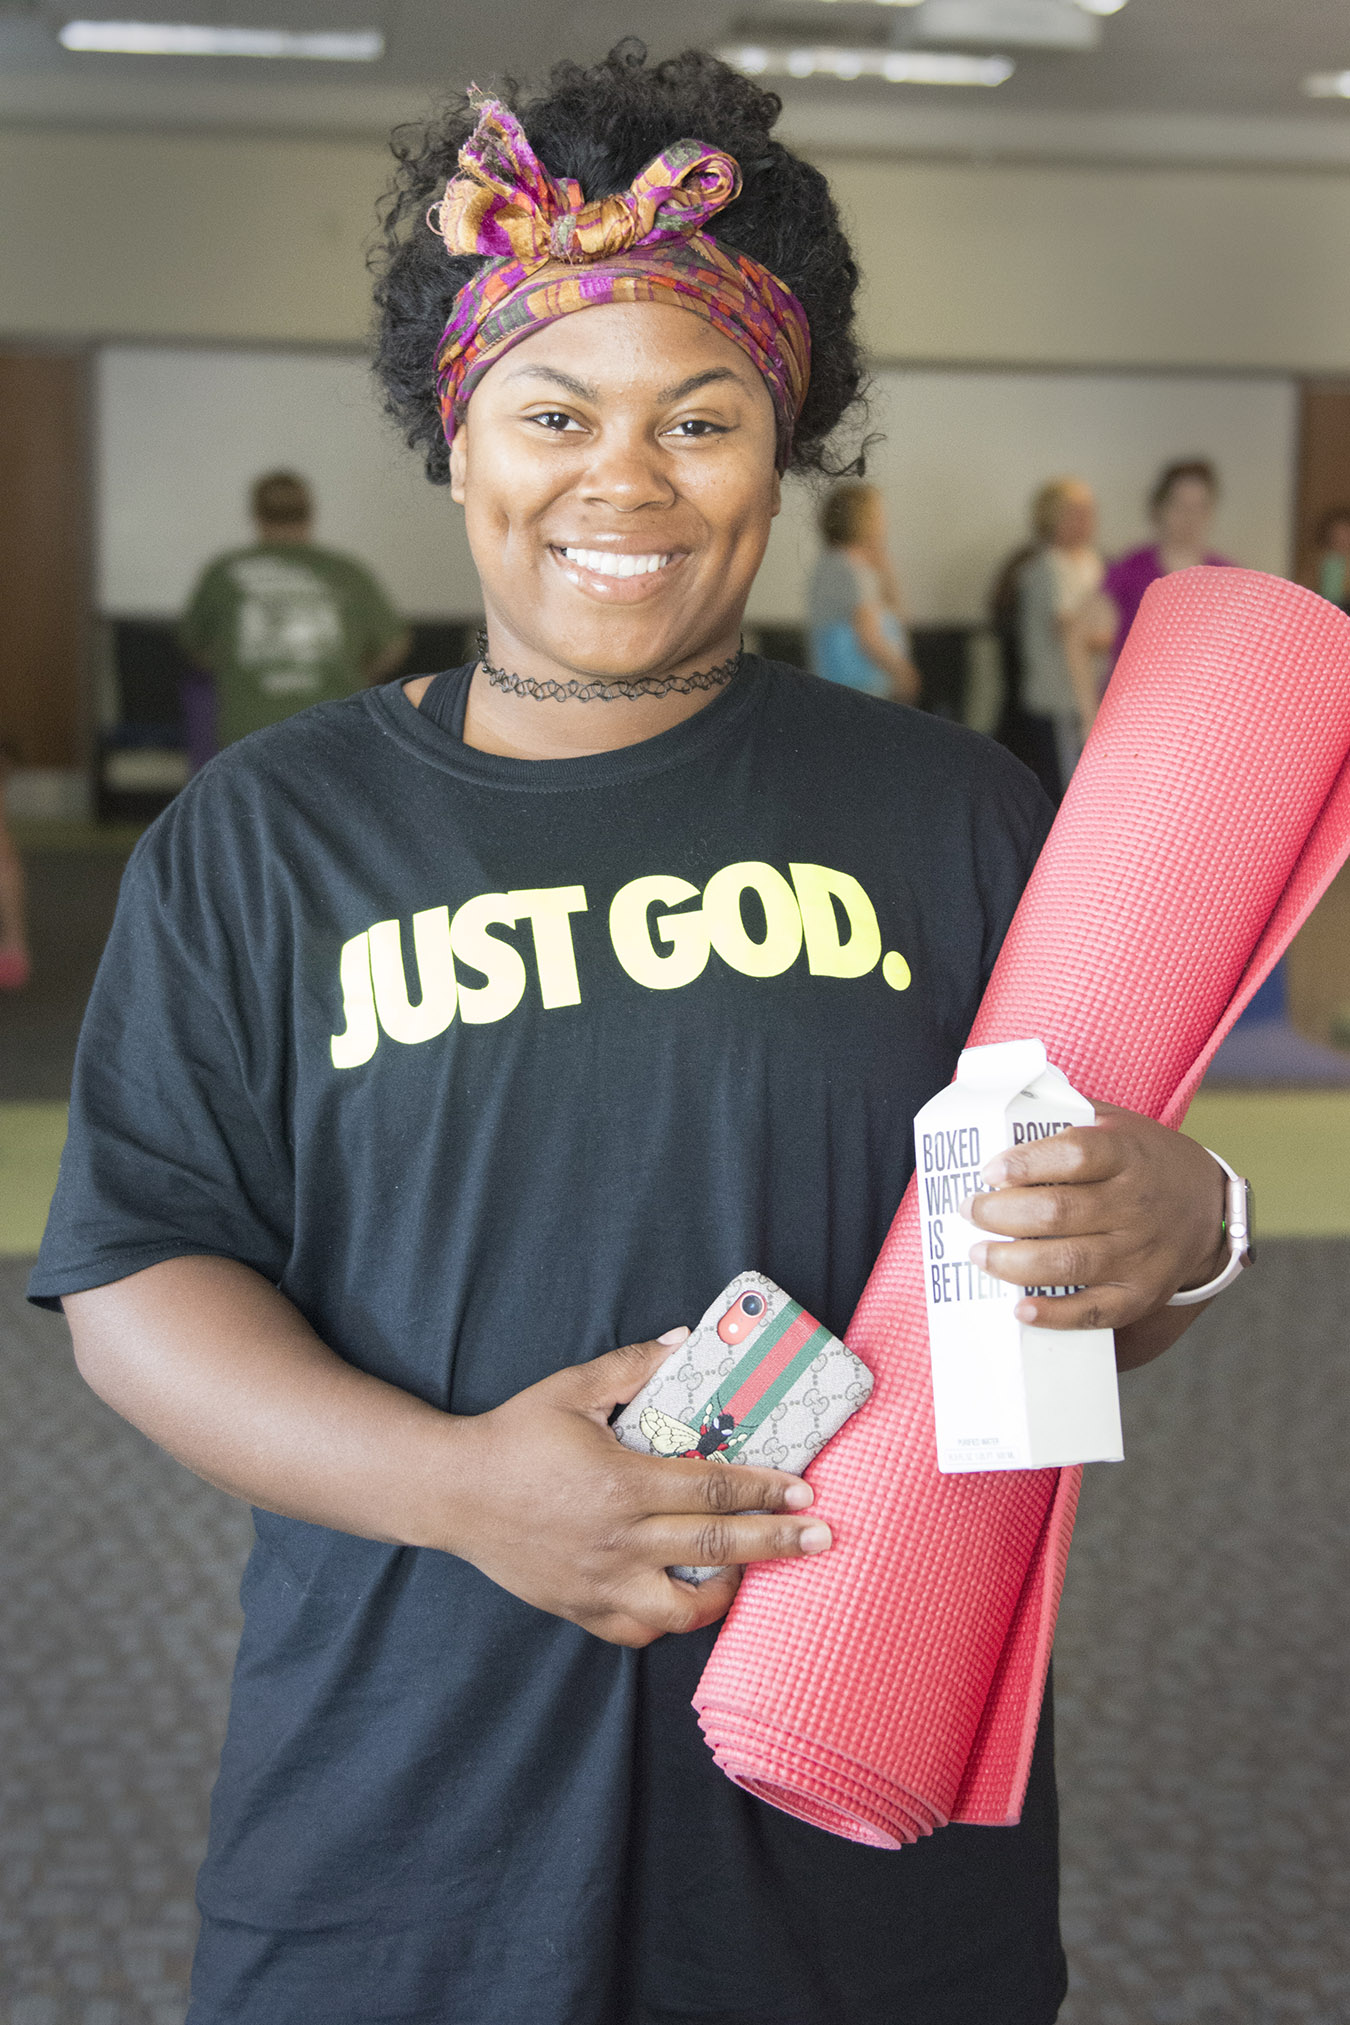 woman smiling while holding a yoga mat